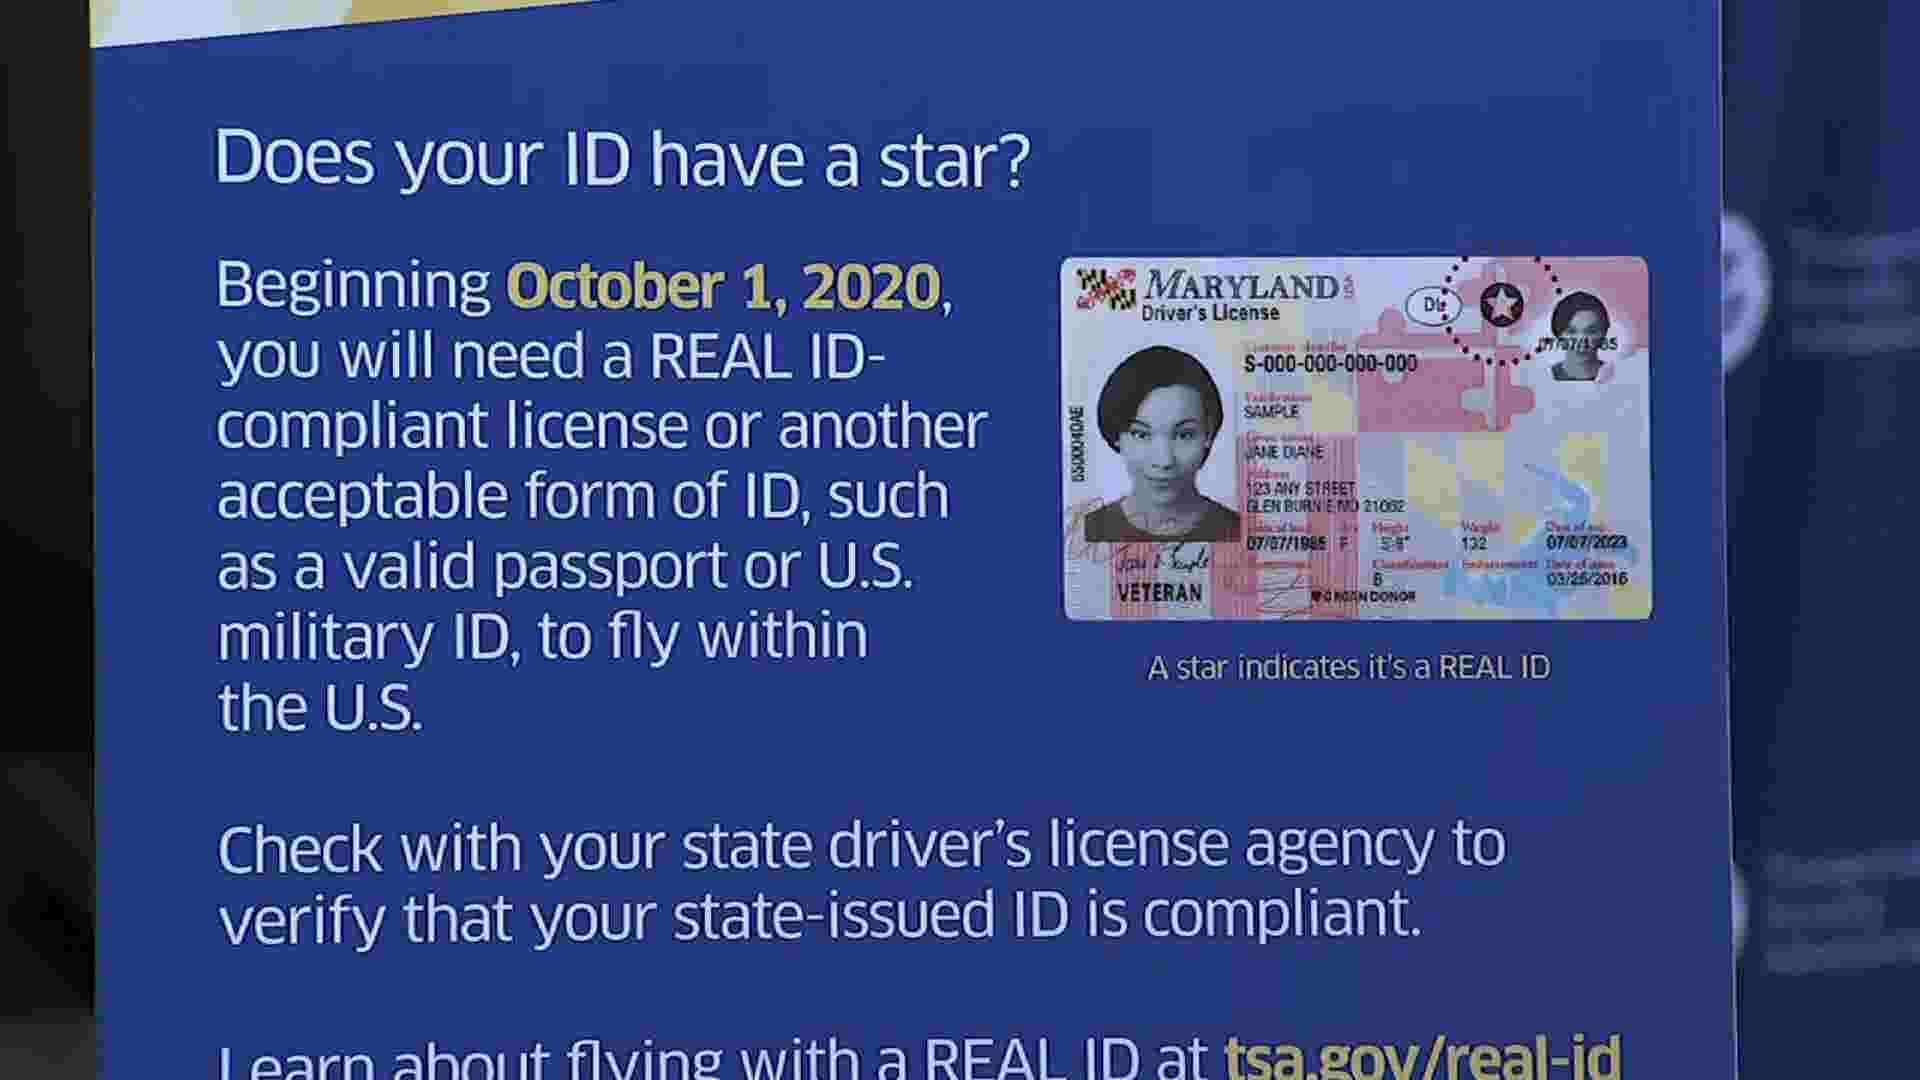 Failed software update causes long delays at Tennessee driver's license centers